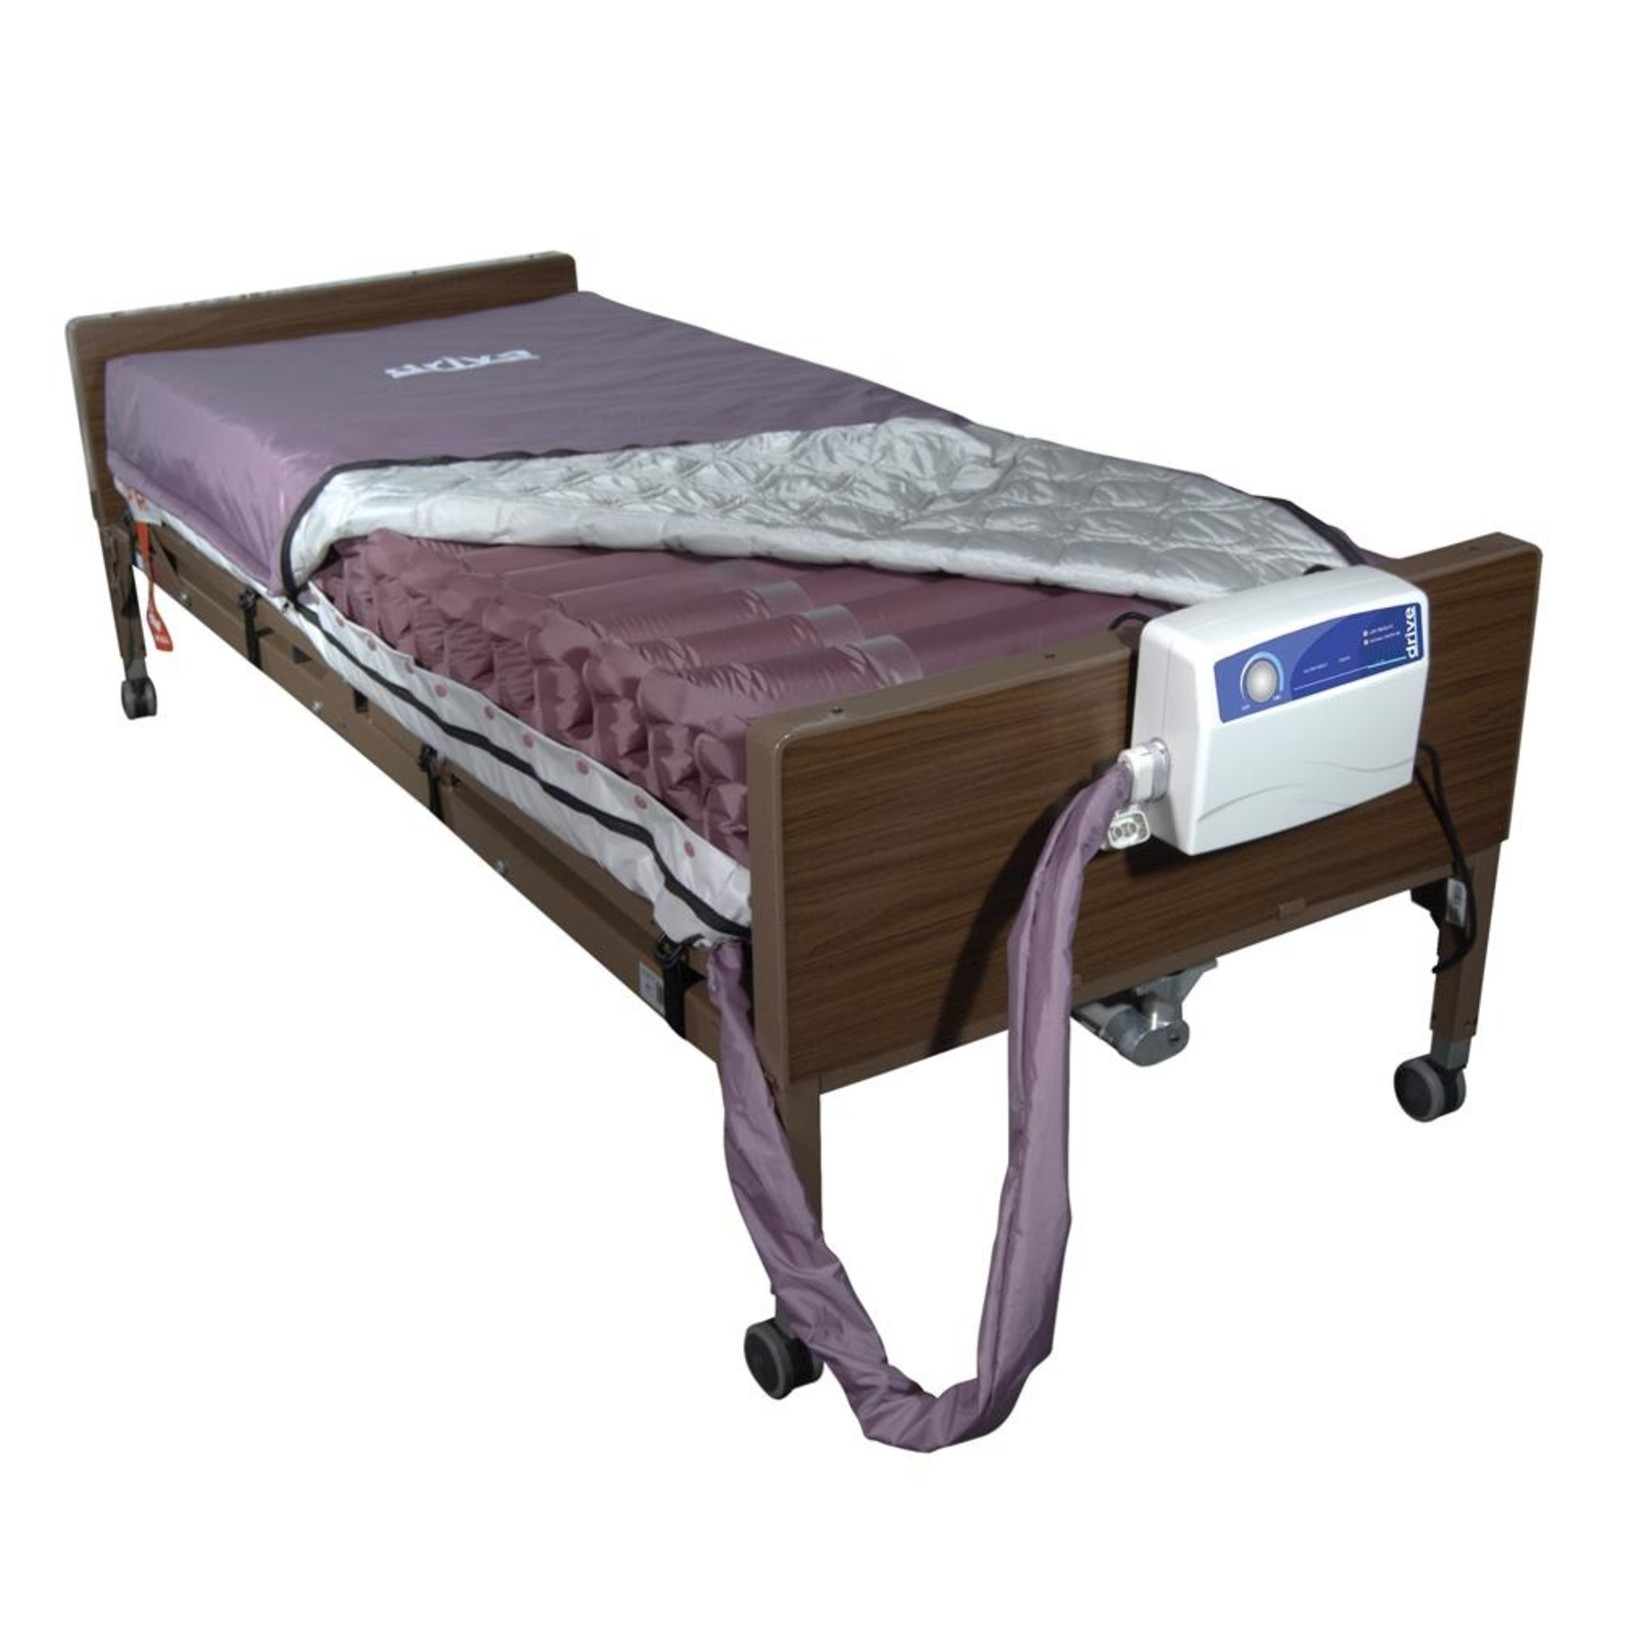 LOW AIR LOSS MATTRESS - Rental Reservation  in Eastern Palm Beach County